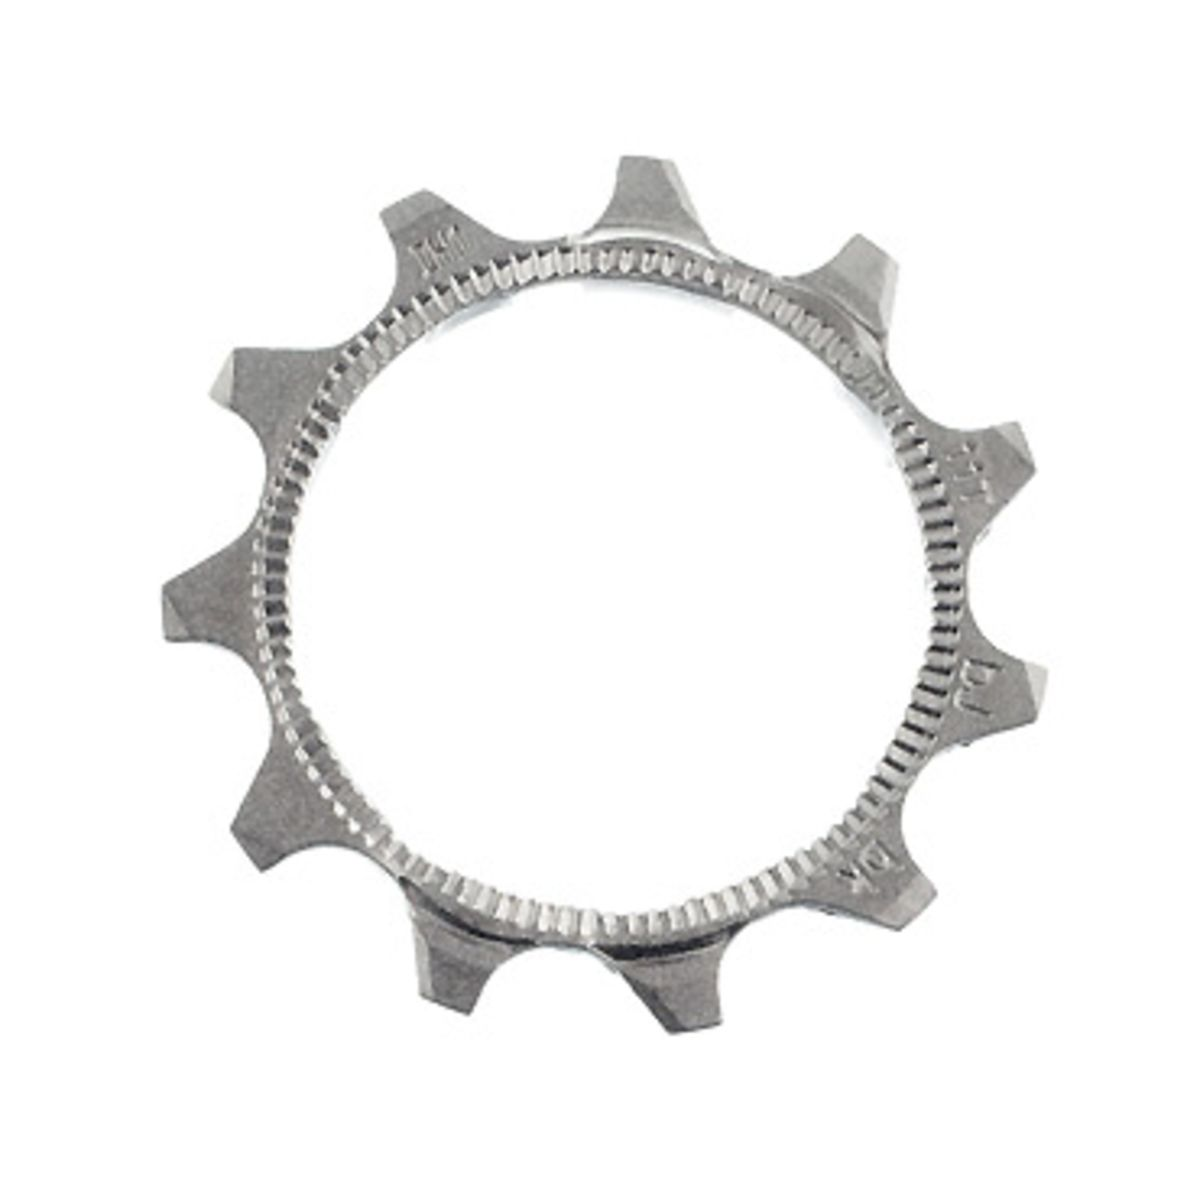 XTR CS-M980 10-speed, 11-tooth replacement sprocket